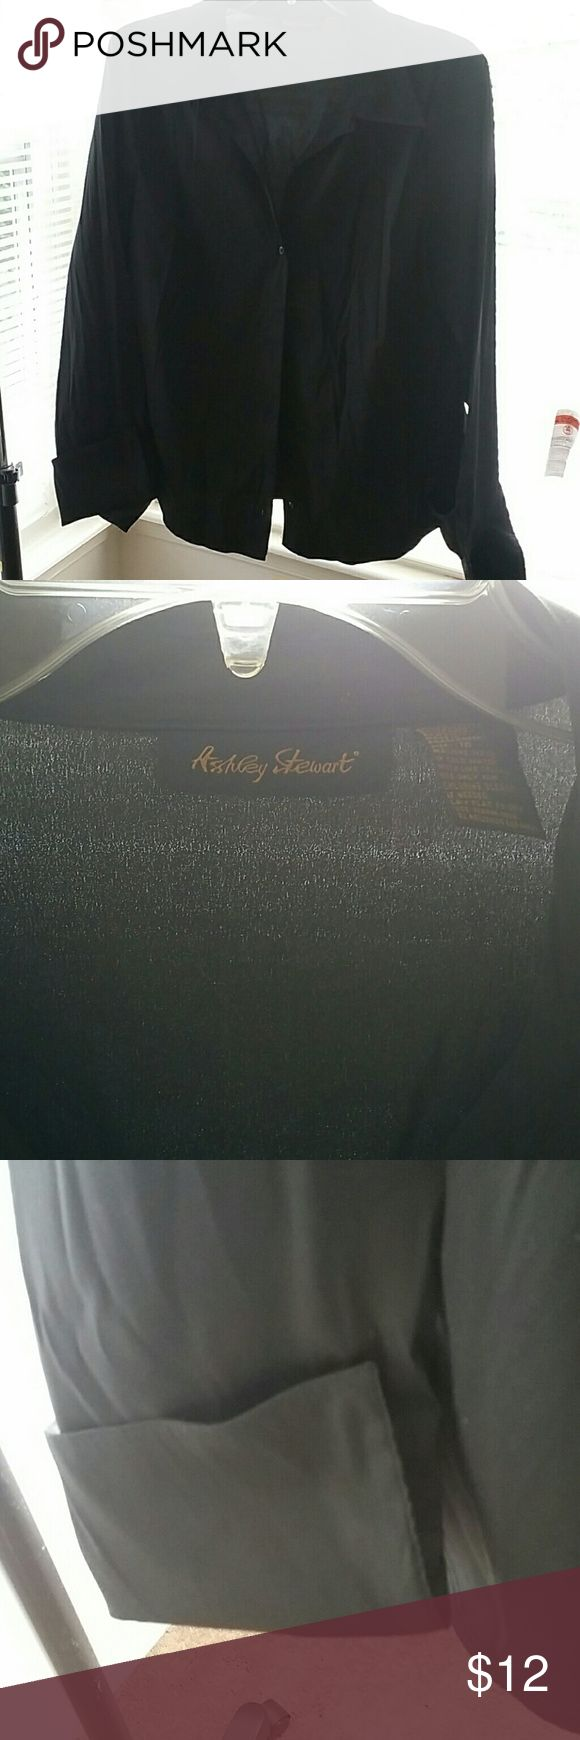 Gently worn Ashley Stewart work blouse. It's black with a very nice lapel and cuffs which can be worn with or without cufflinks (I rocked cufflinks :) Ashley Stewart Tops Button Down Shirts